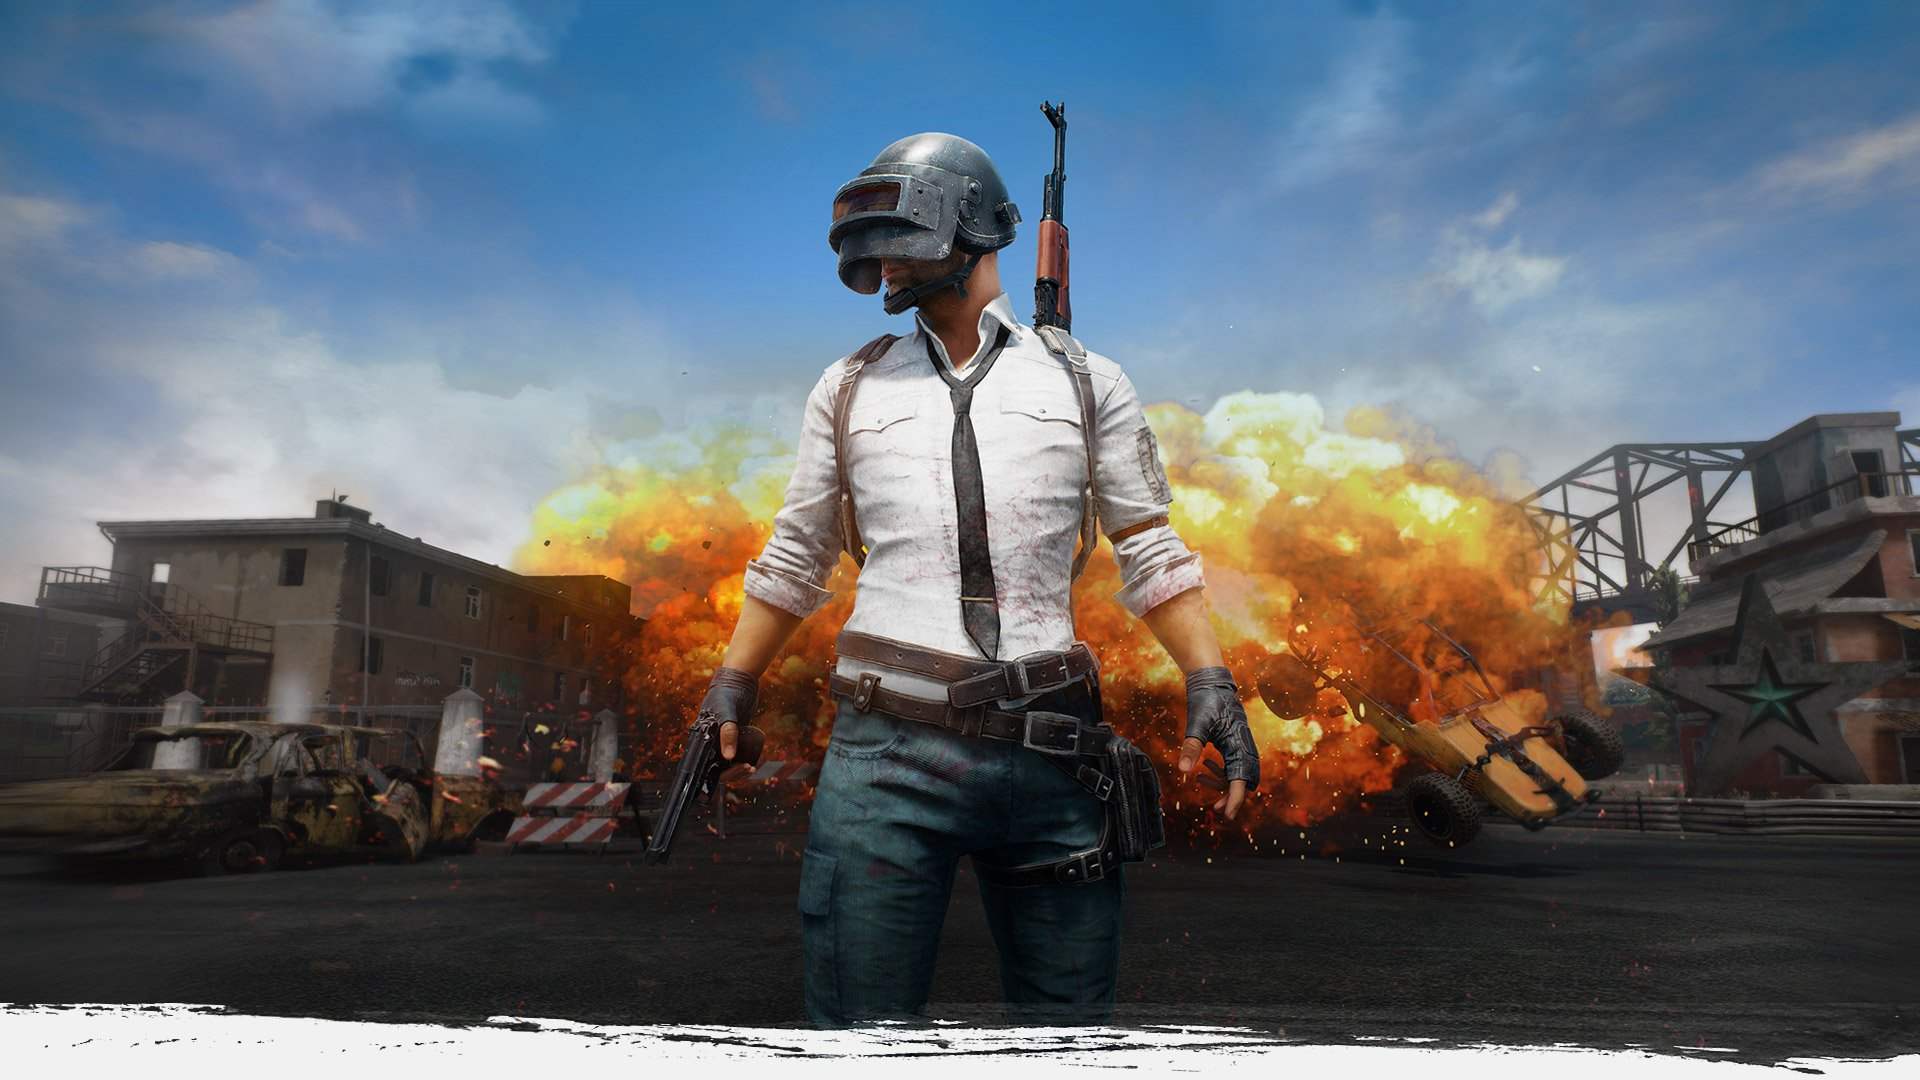 Dataminer uncovers hidden items and clothing options in PlayerUnknown's Battlegrounds screenshot